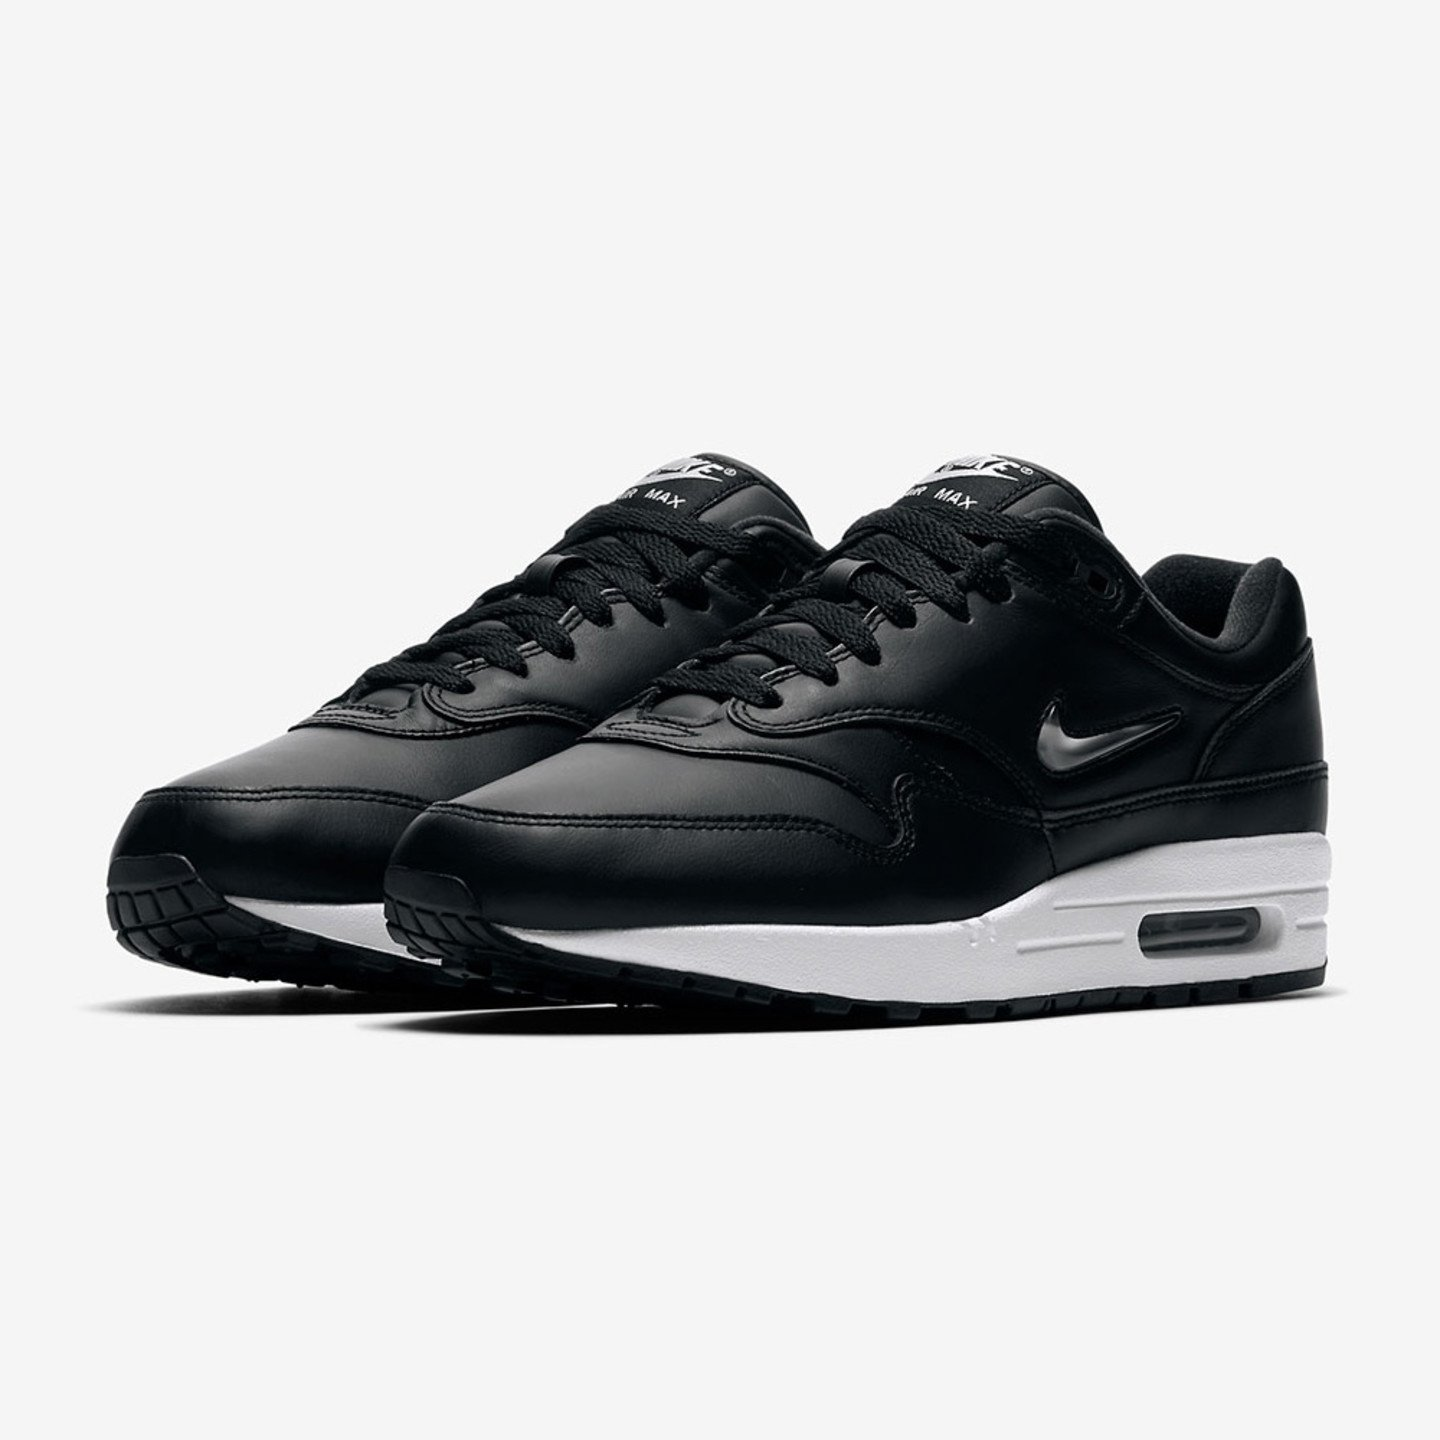 Nike Air Max 1 SC Jewel Black / Metallic Silver 918354-001